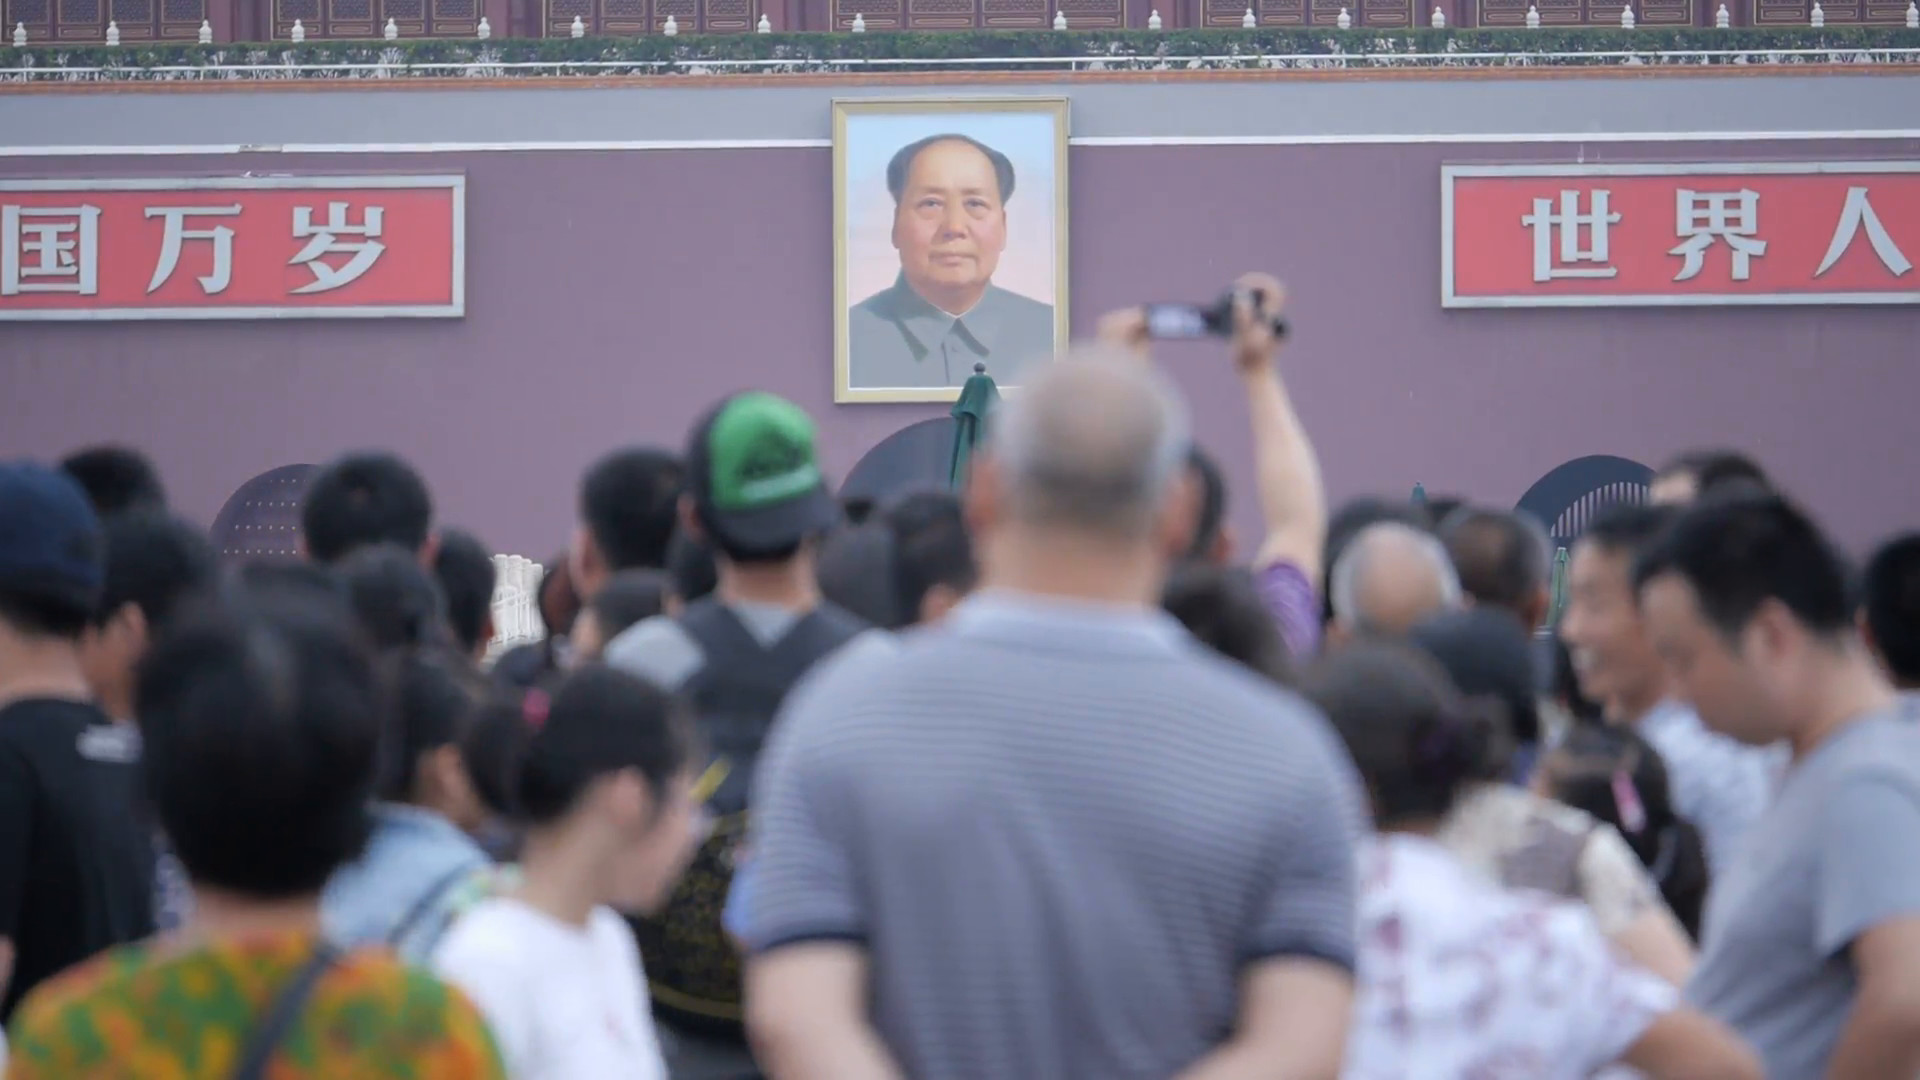 Res: 1920x1080, Mao Zedong Portrait at Tiananmen Square Stock Video Footage - Videoblocks